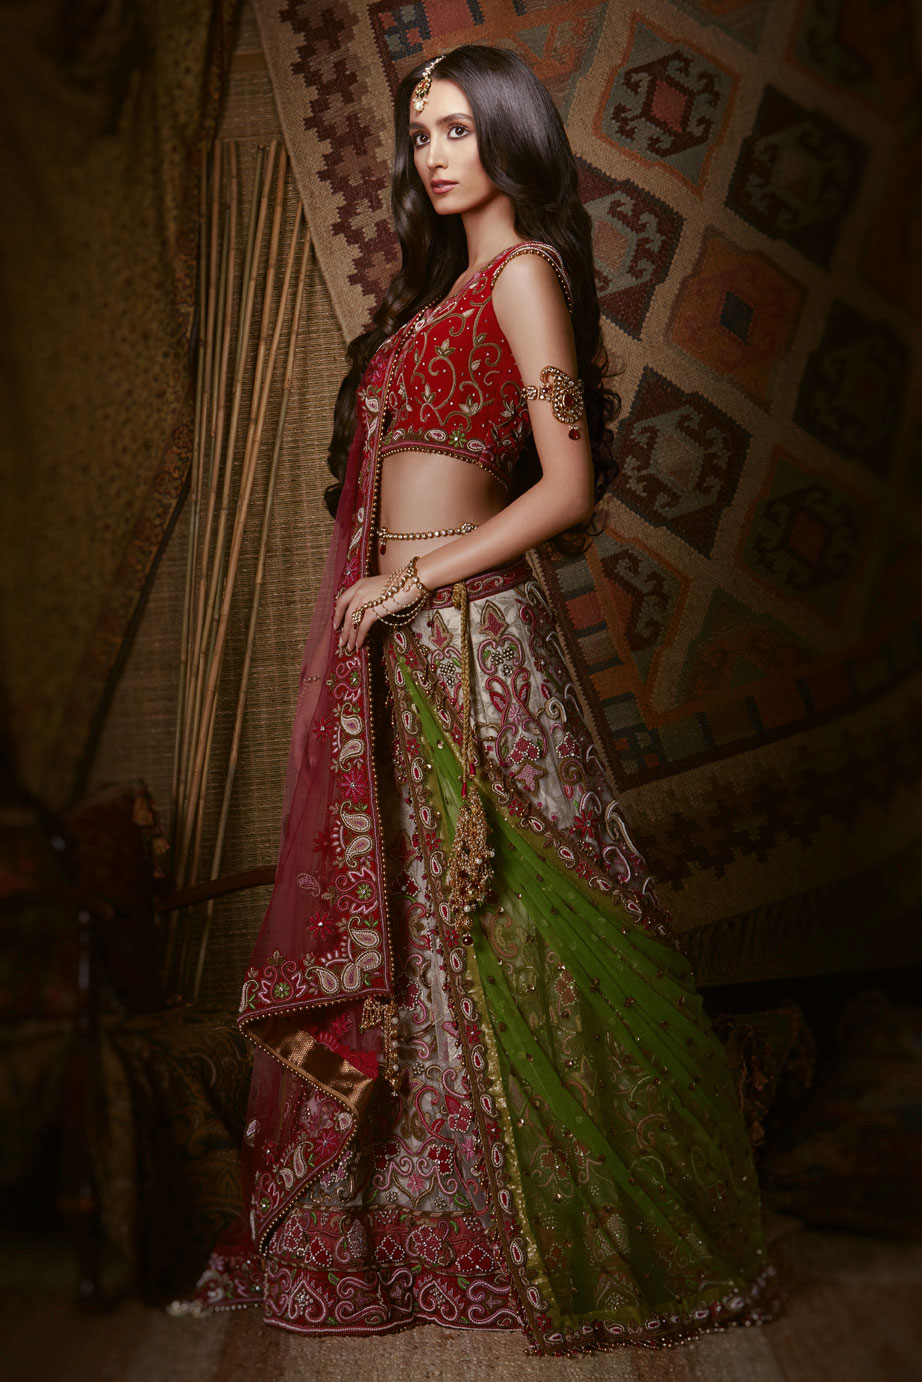 Indian Bridal Traditional Wear Indian Wedding Outfit